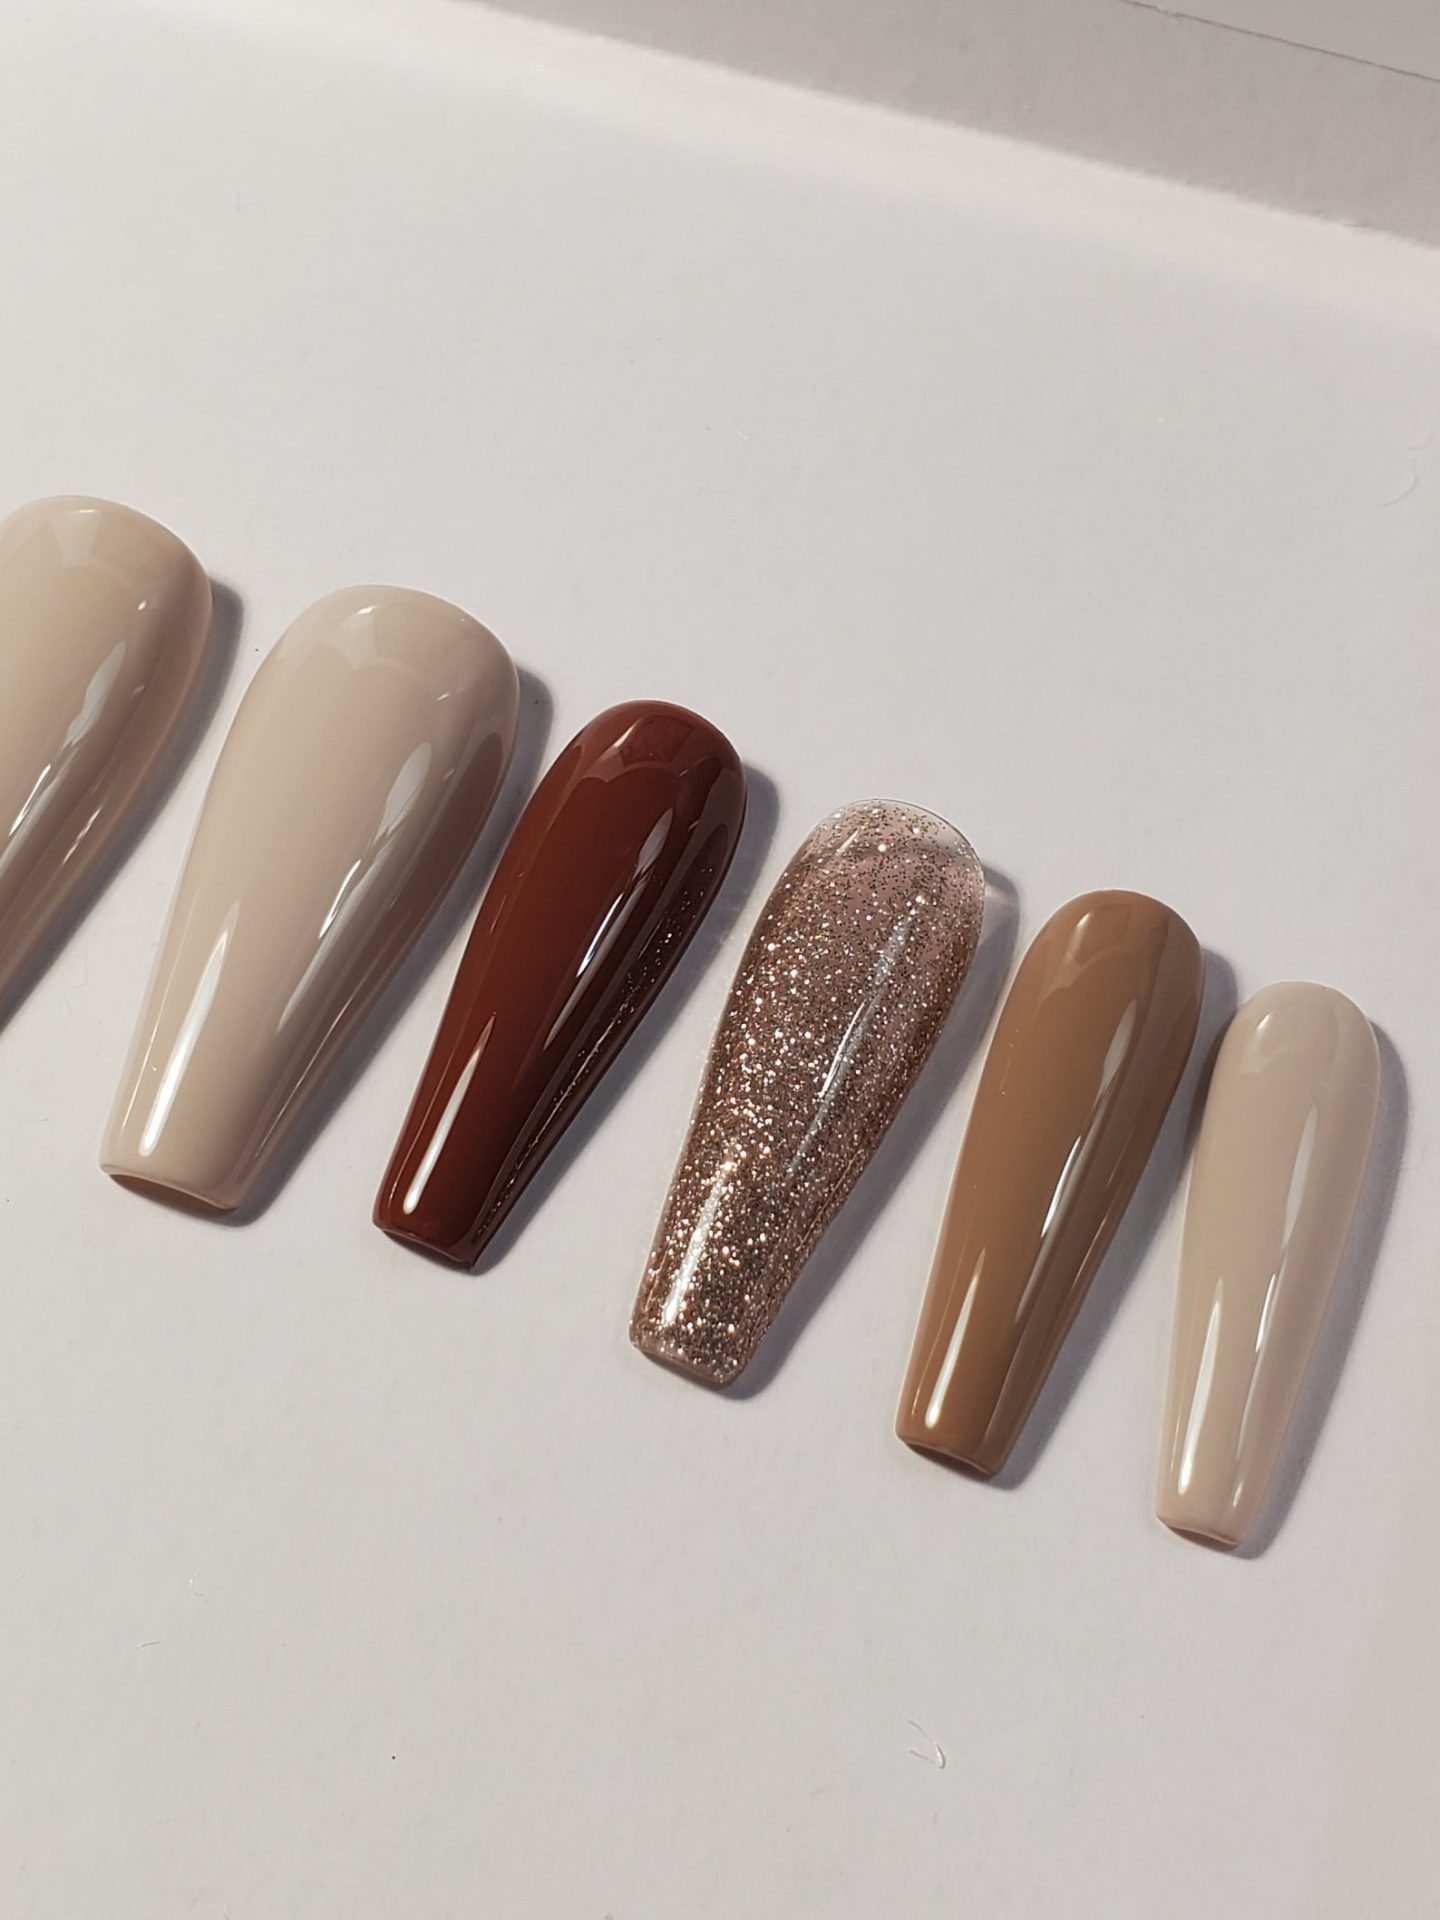 Light brown and nude press on nails with glitter